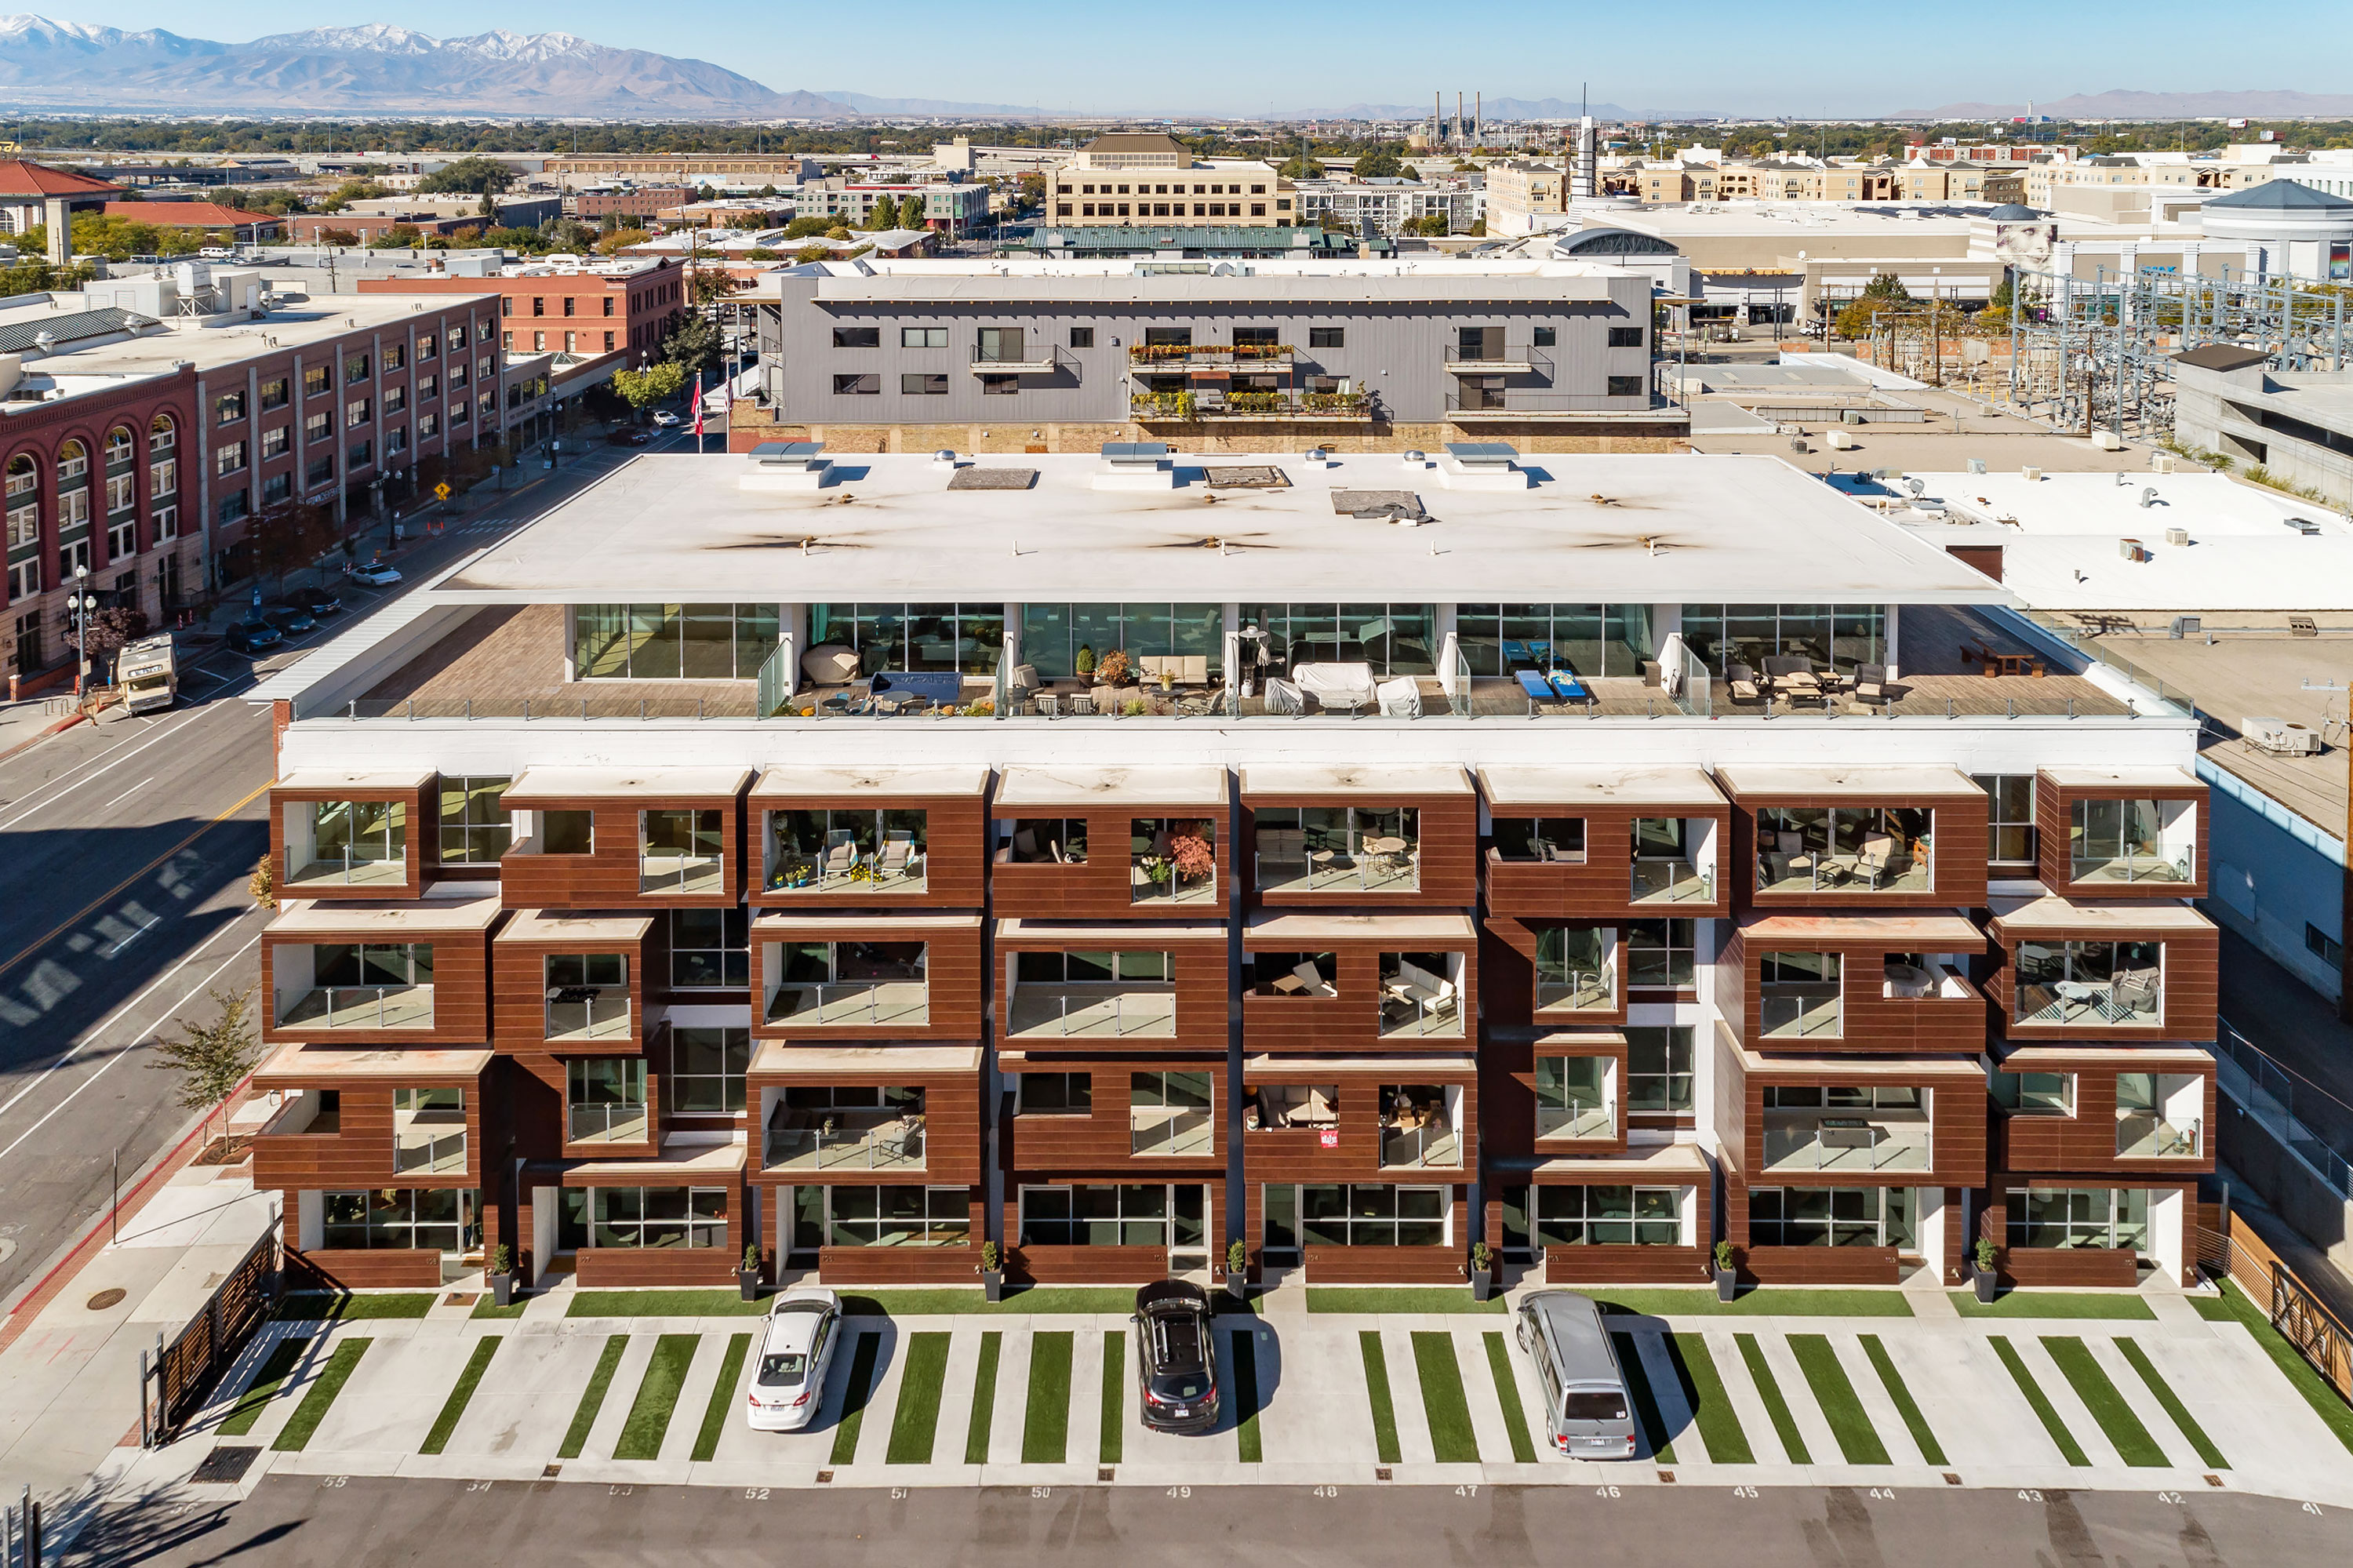 City Lofts - Salt Lake City, Utah. Aerial Photography by Alan Blakely.